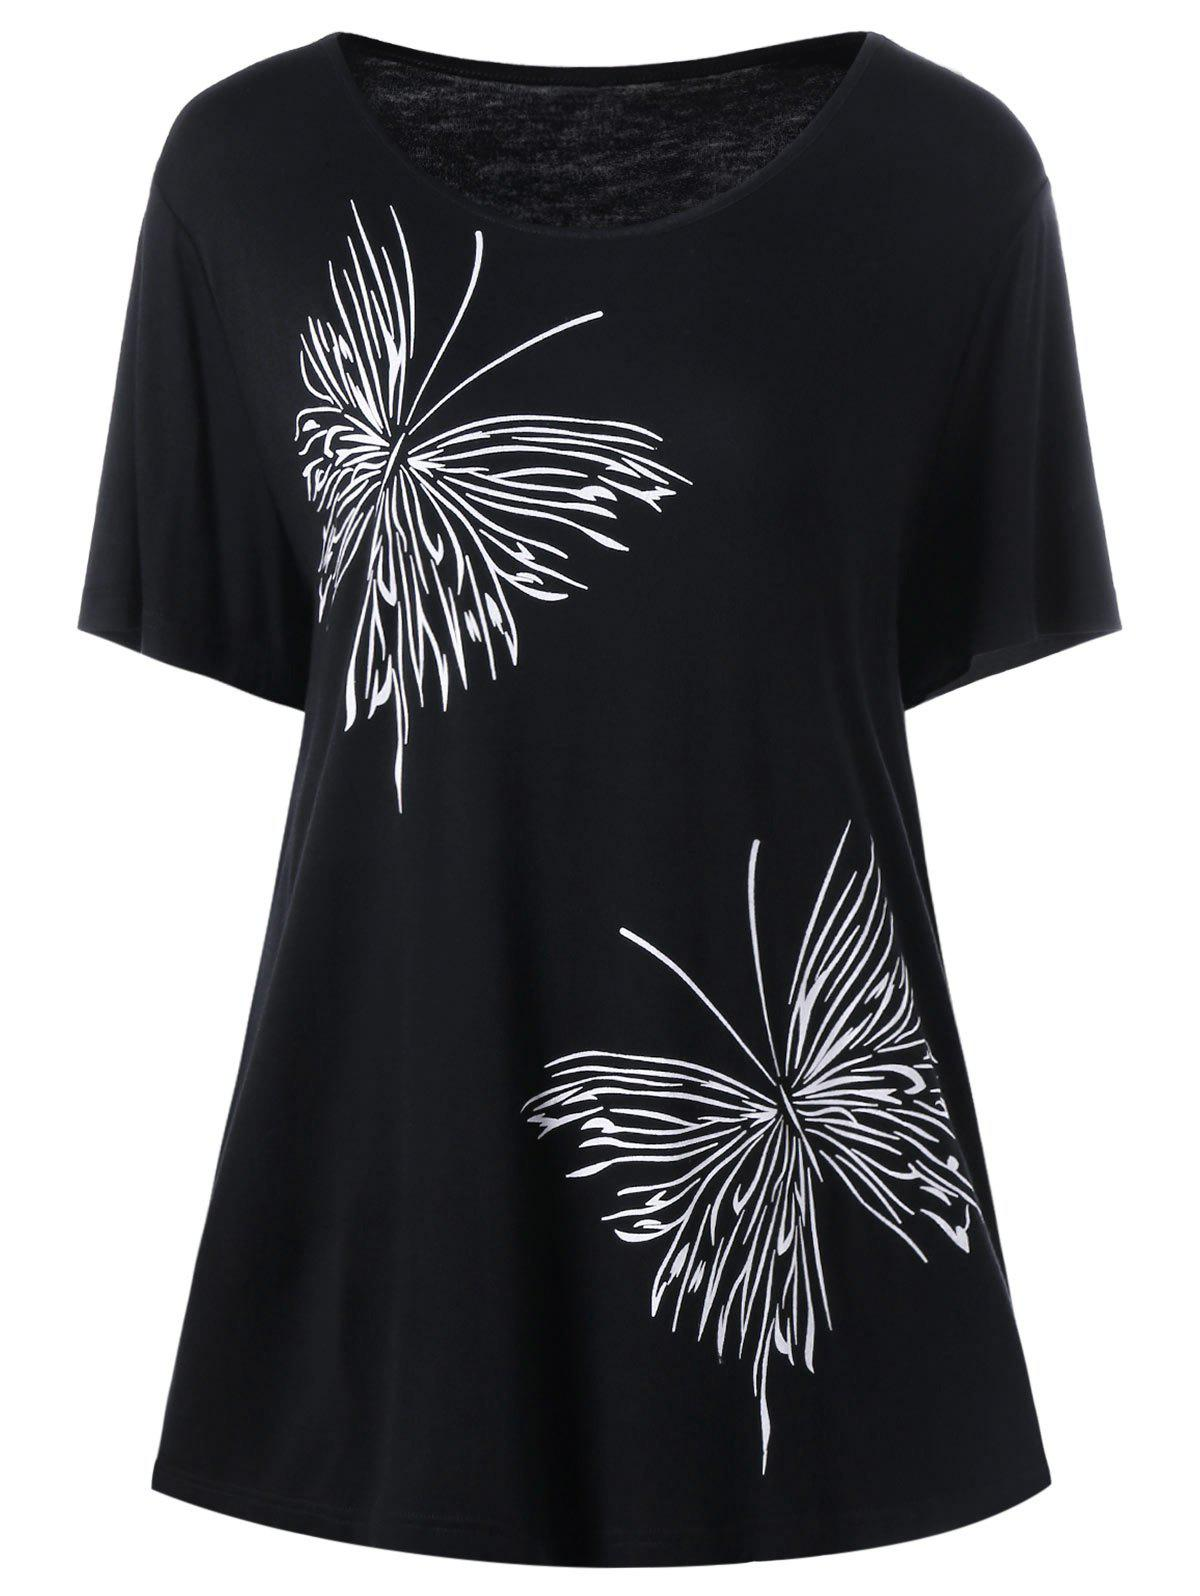 Plus Size Butterfly Graphic T-ShirtWOMEN<br><br>Size: 5XL; Color: BLACK; Material: Rayon,Spandex; Shirt Length: Long; Sleeve Length: Short; Collar: Round Neck; Style: Casual; Season: Summer; Pattern Type: Insect; Weight: 0.3300kg; Package Contents: 1 x T-Shirt;